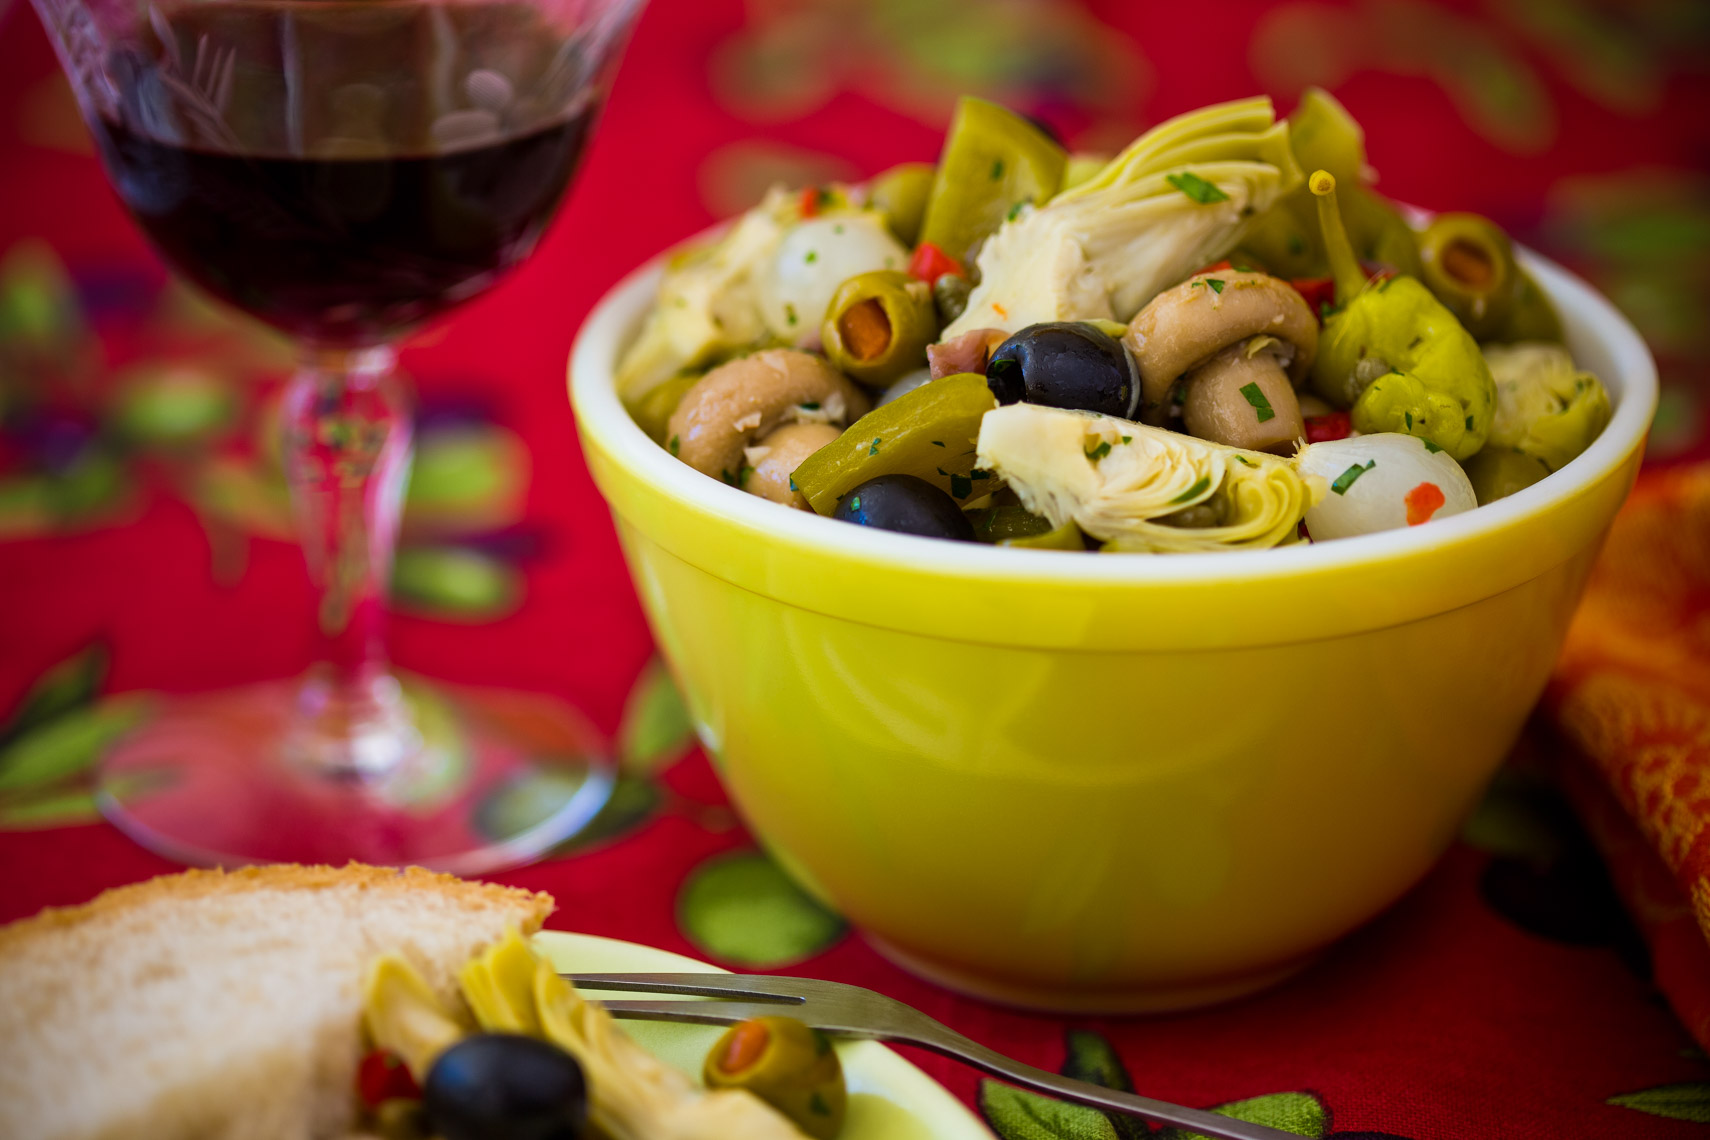 Los Angeles Photographer | Dana Hursey Photography | Food Photography | Antipasto Salad